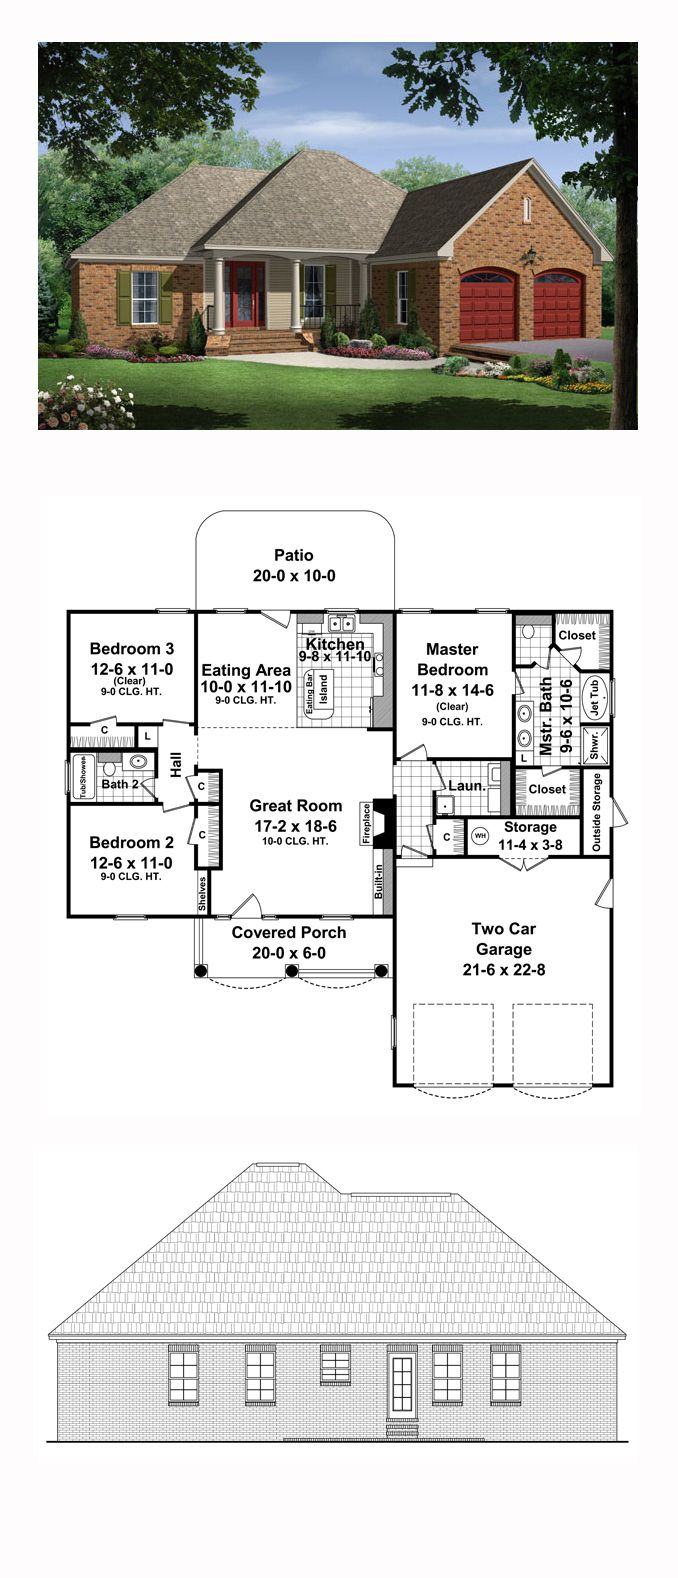 European style cool house plan id chp total living area also rh pinterest